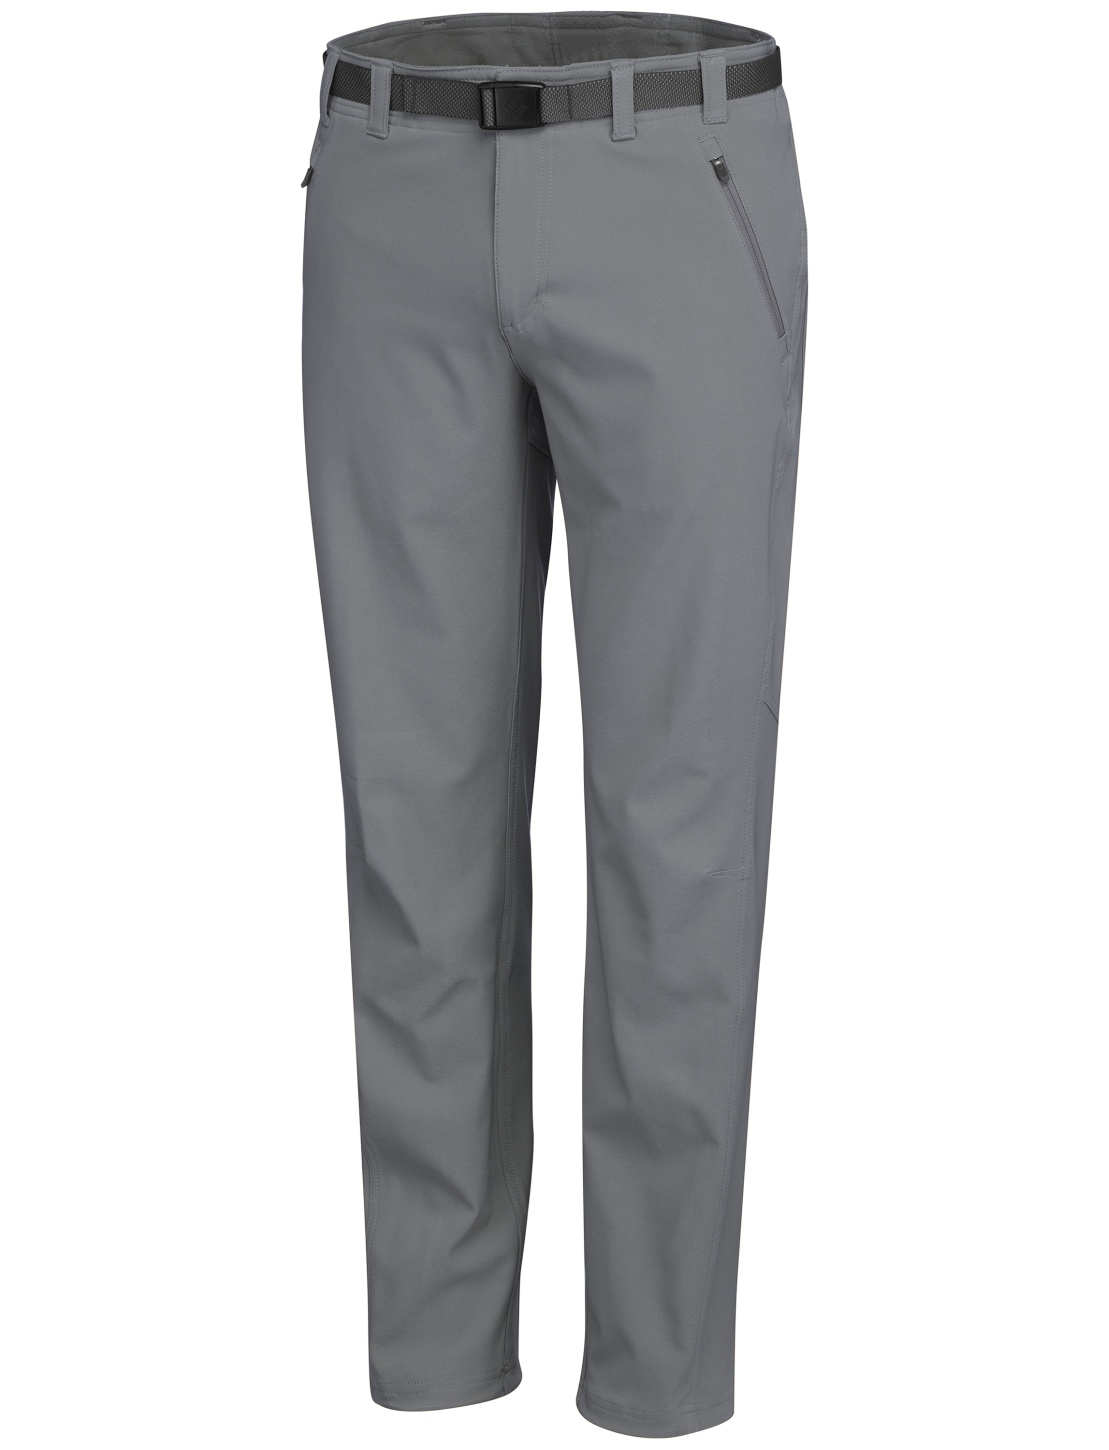 Columbia Men's Maxtrail Trousers Graphite-30